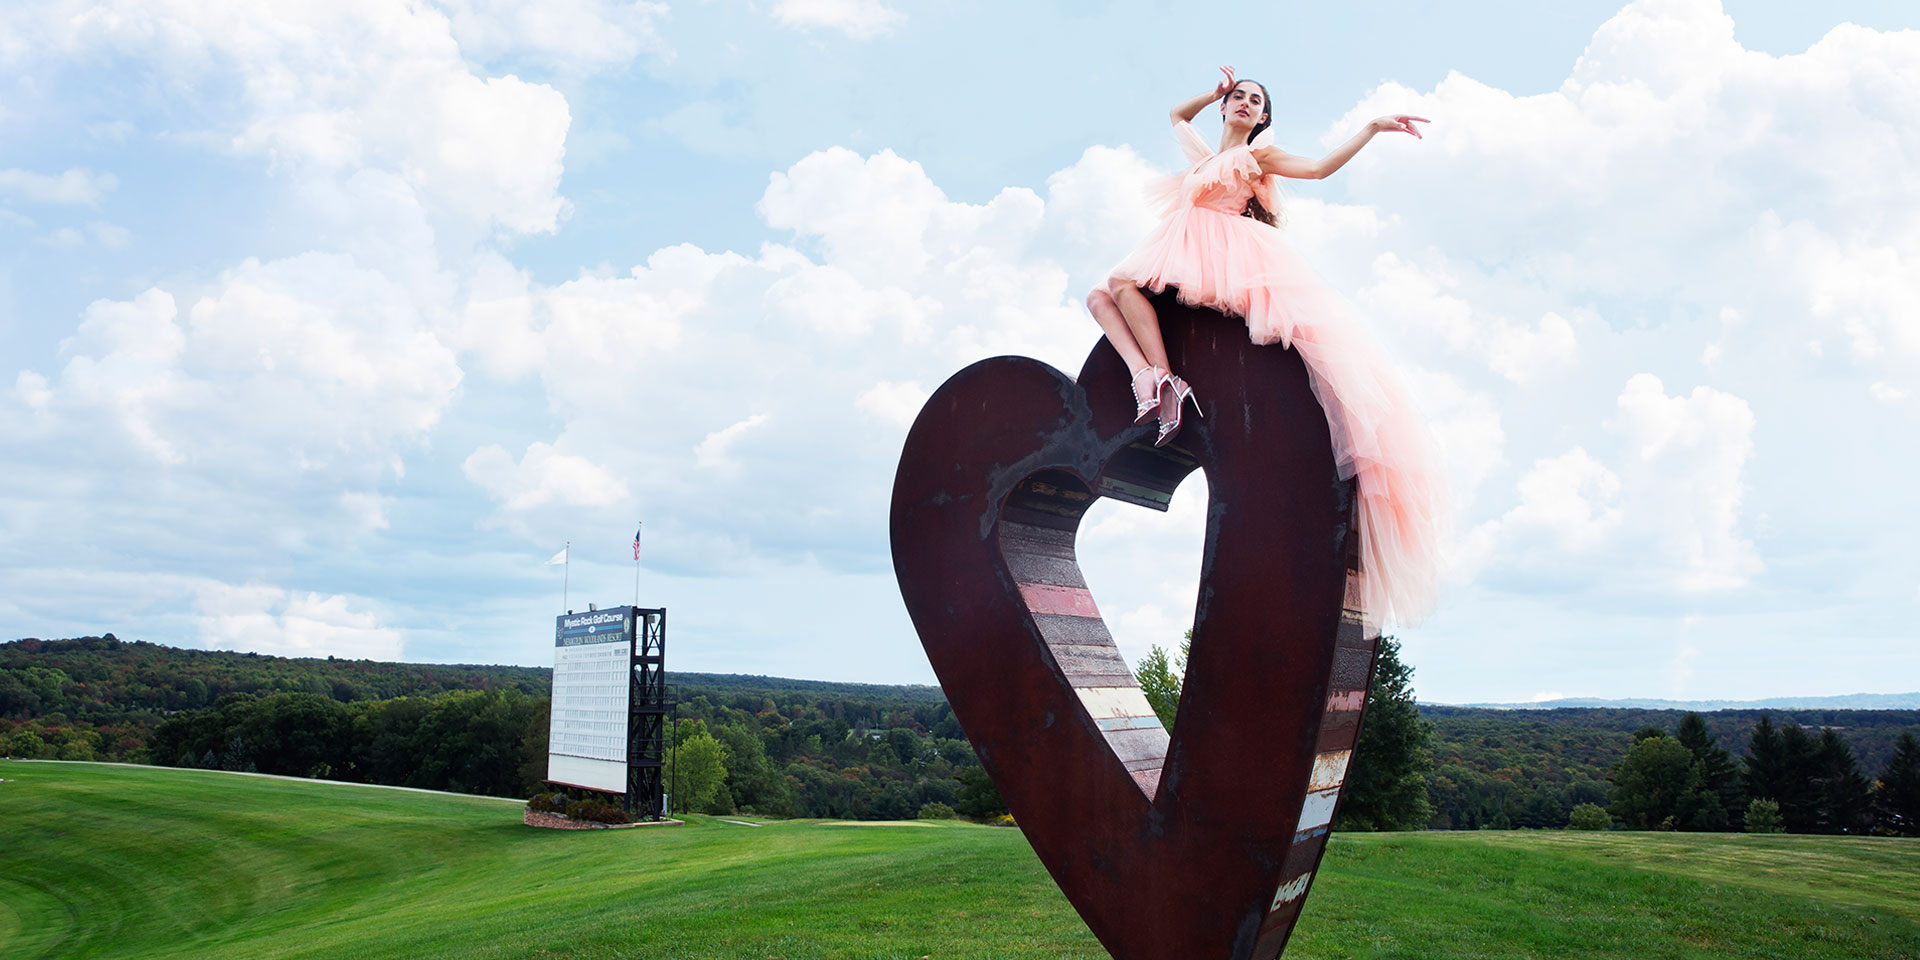 woman in a pink dress sitting on top of a heart sculpture outdoors